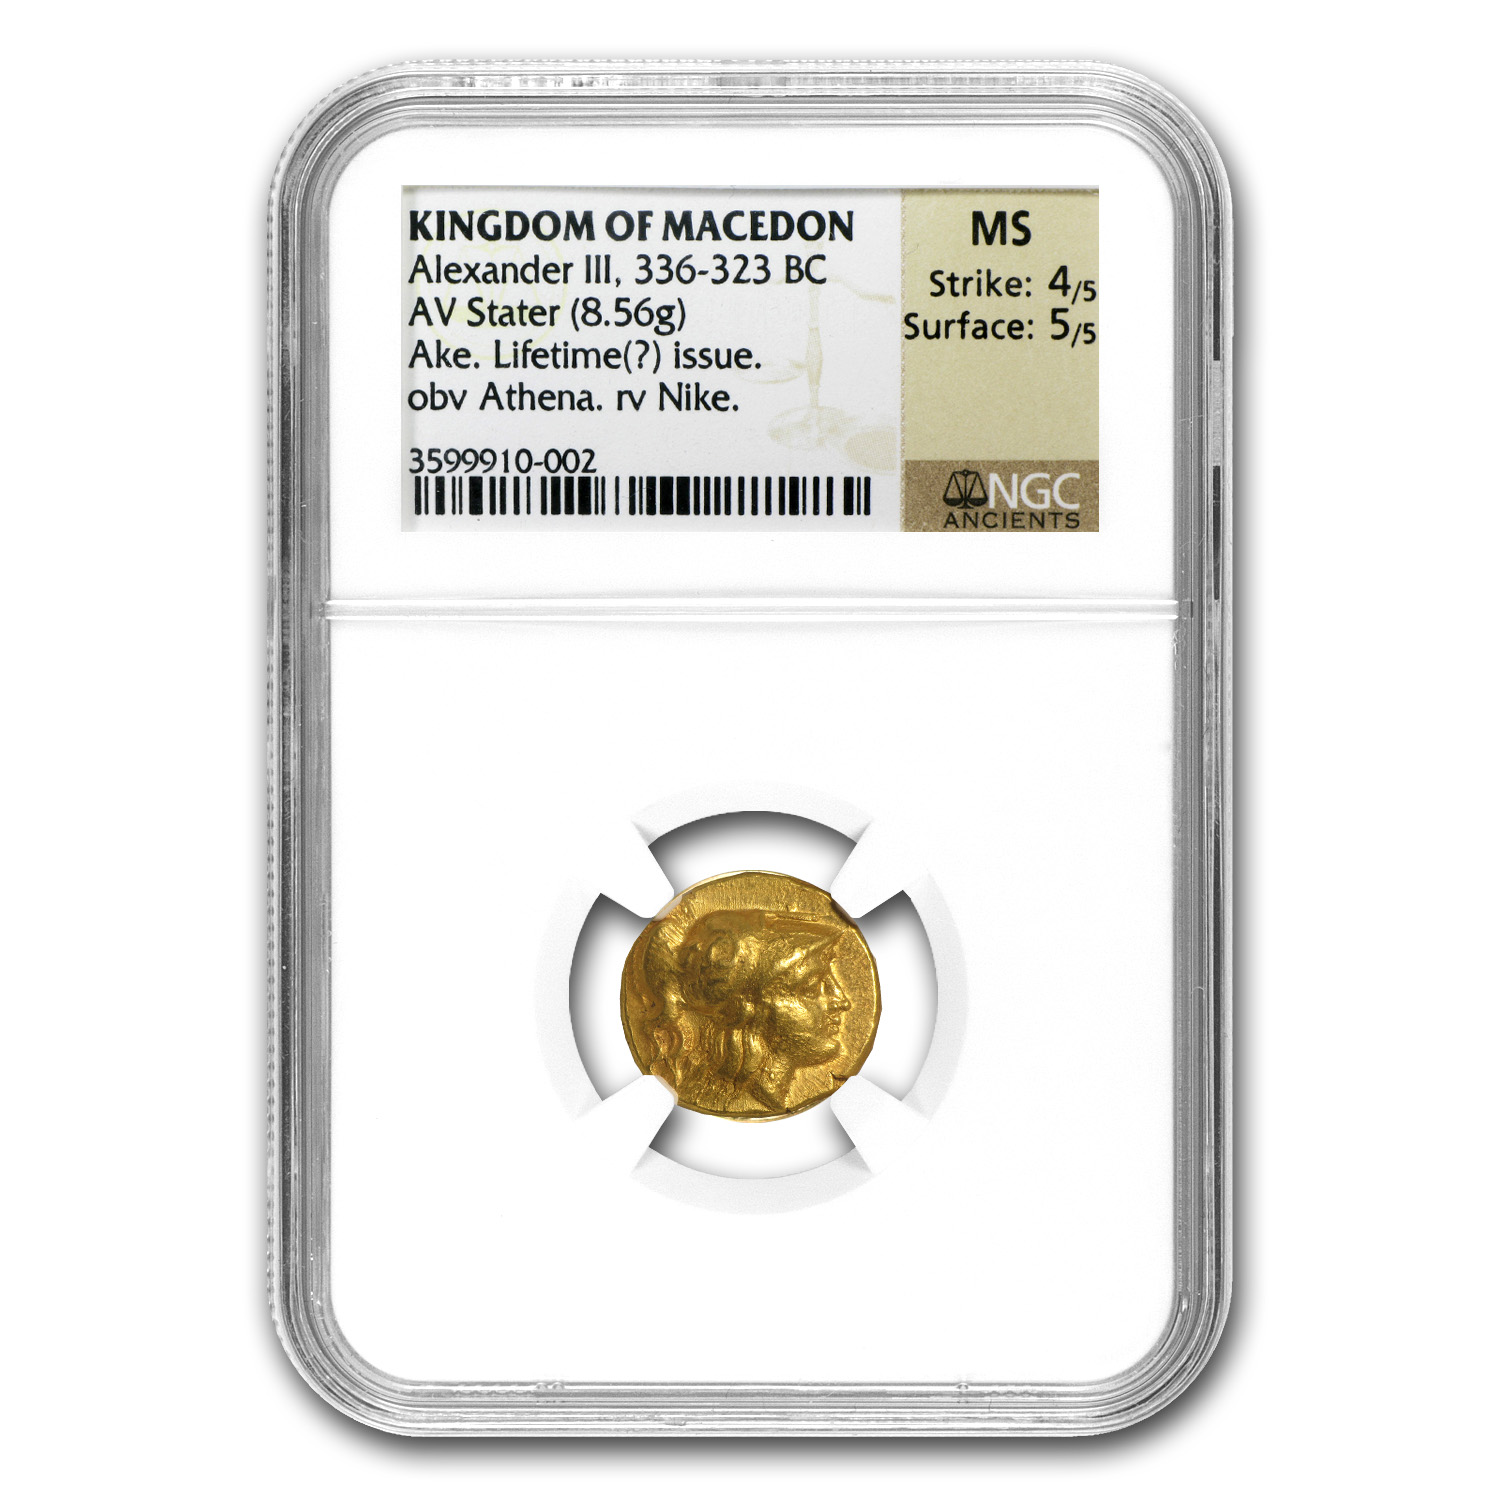 Macedonia Gold Stater of Alexander III MS NGC (336-323 BC)